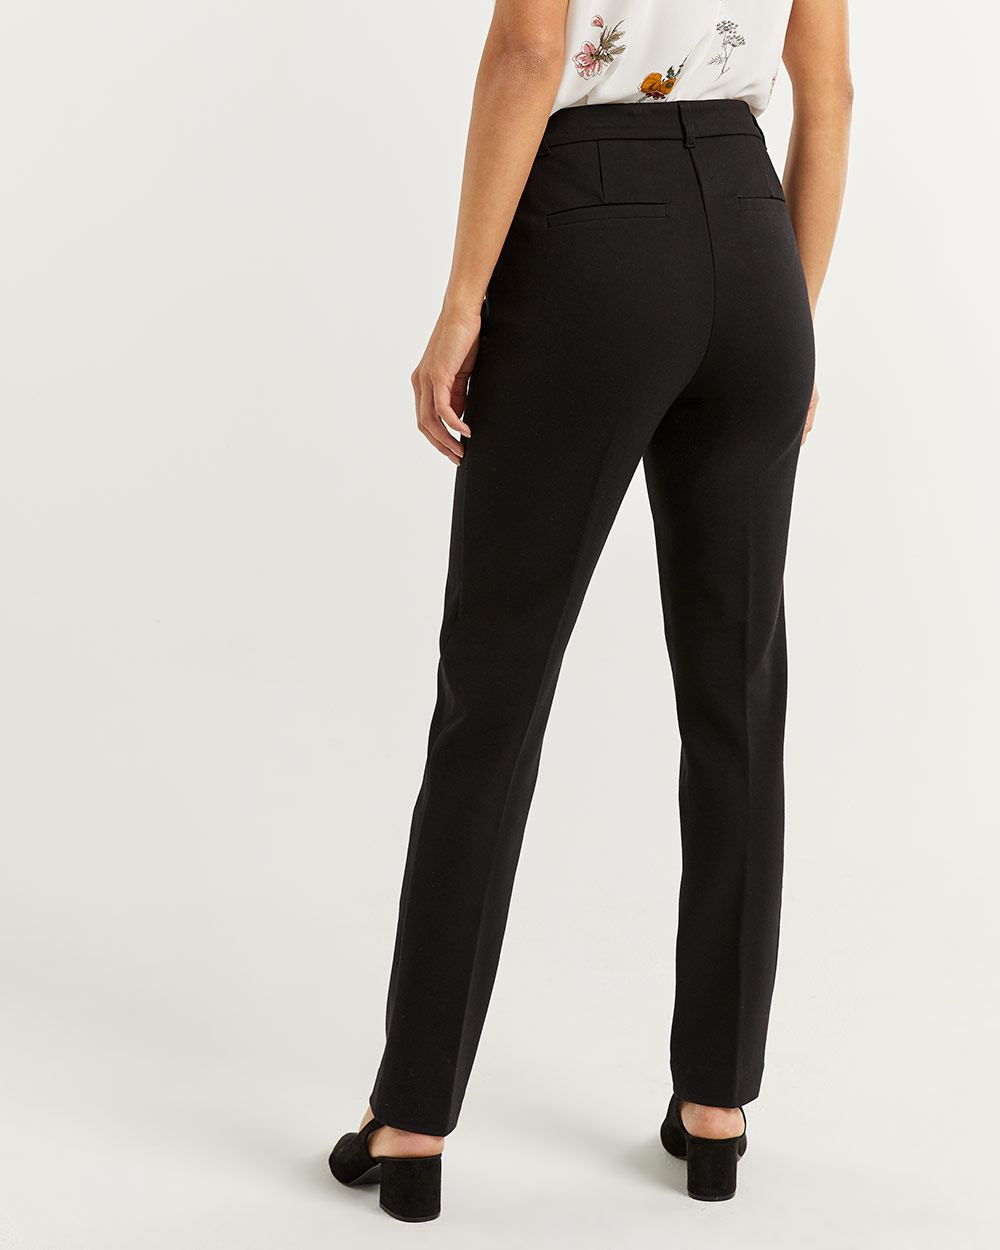 Black Straight Pull On Pants The Modern Stretch